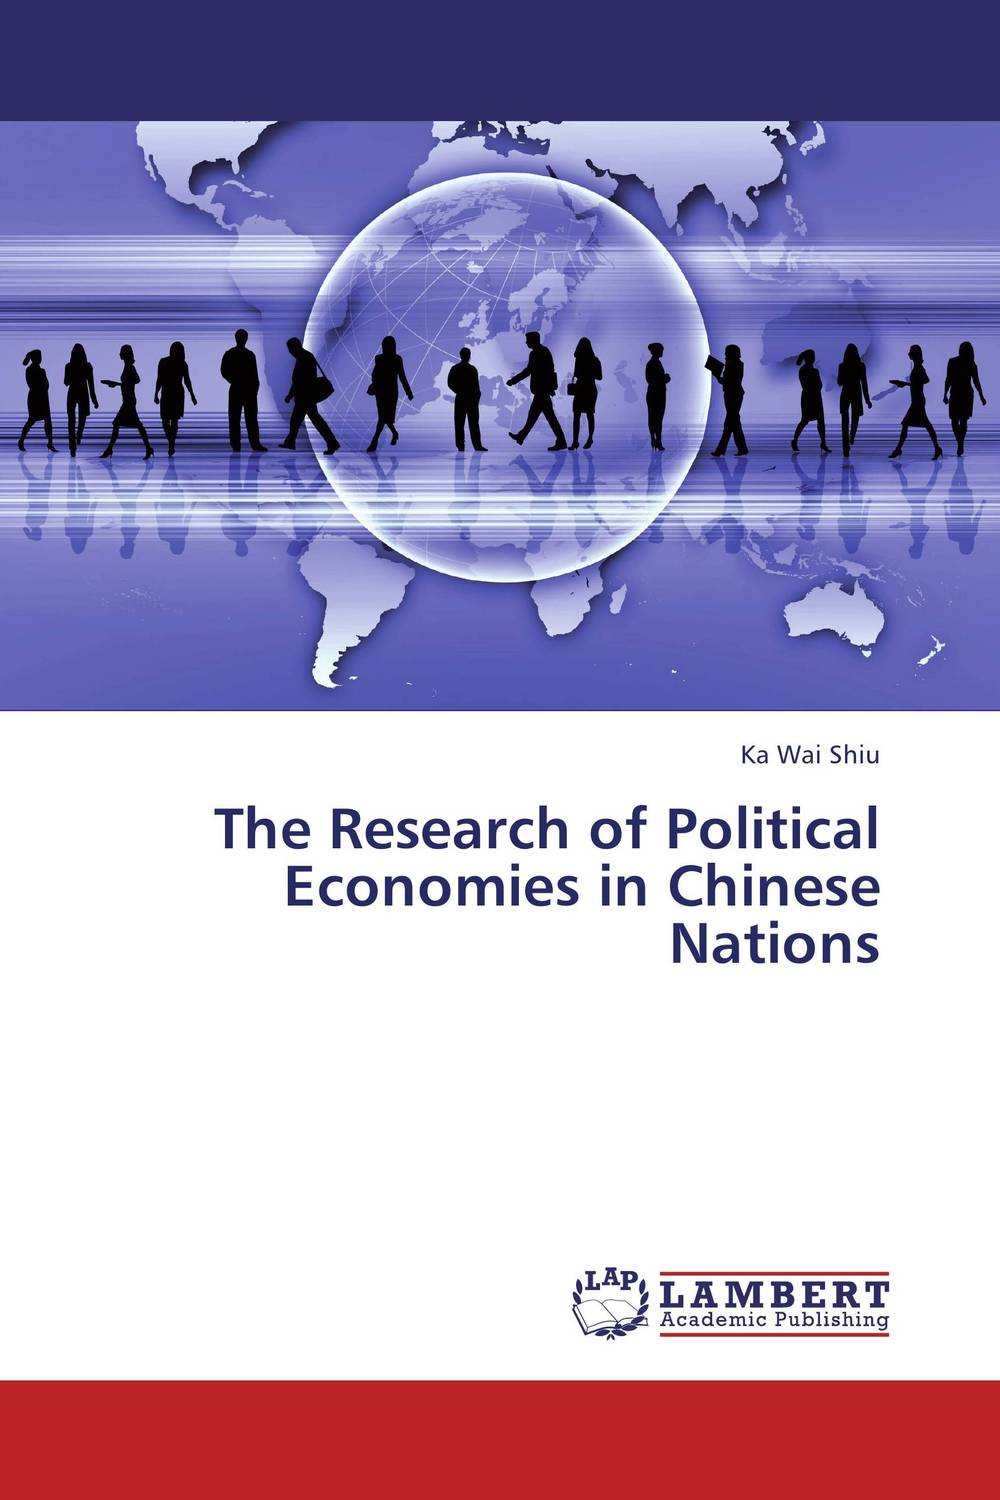 The Research of Political Economies in Chinese Nations